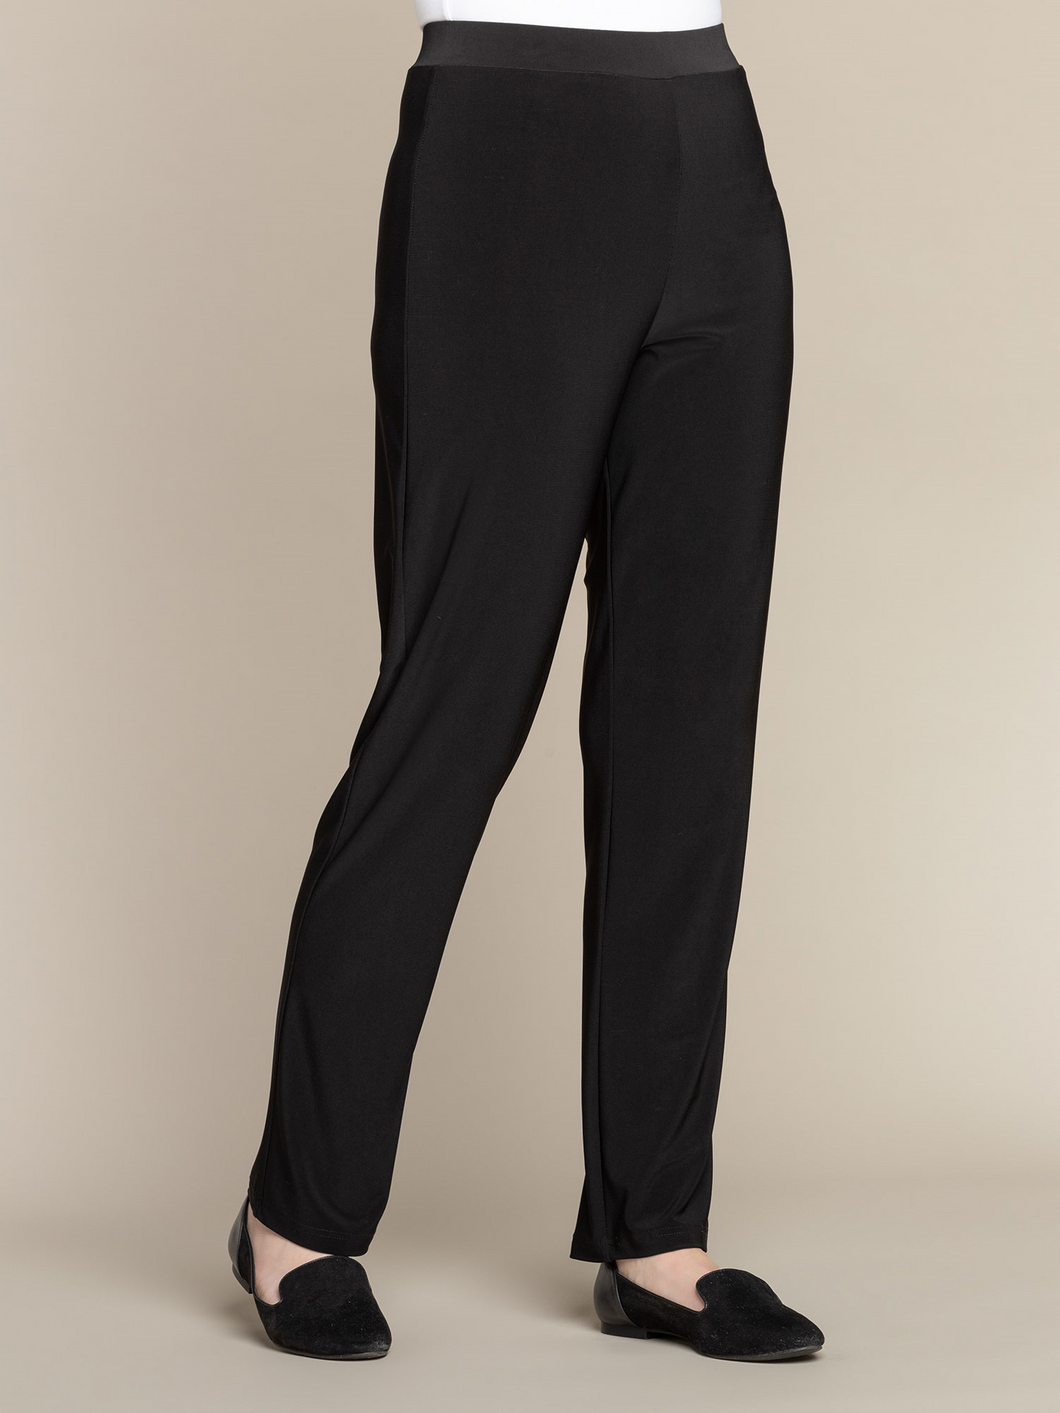 Sympli Essential Pant - Style 27123